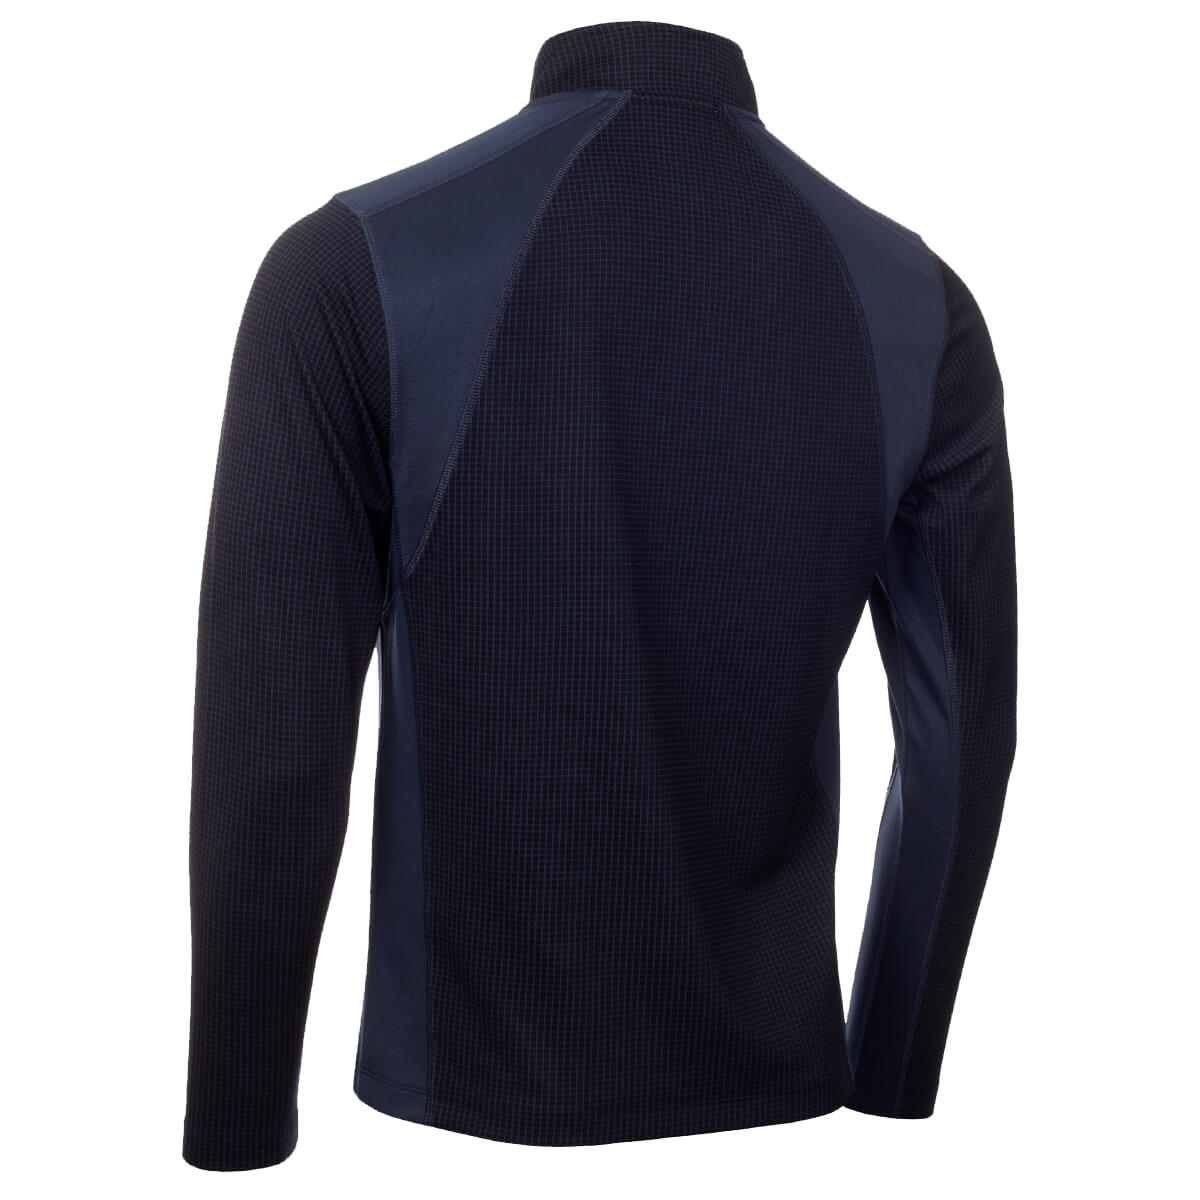 thumbnail 6 - Calvin Klein Mens 2021 Micro Grid CK 1/2 Zip Mid Layer Pullover 50% OFF RRP